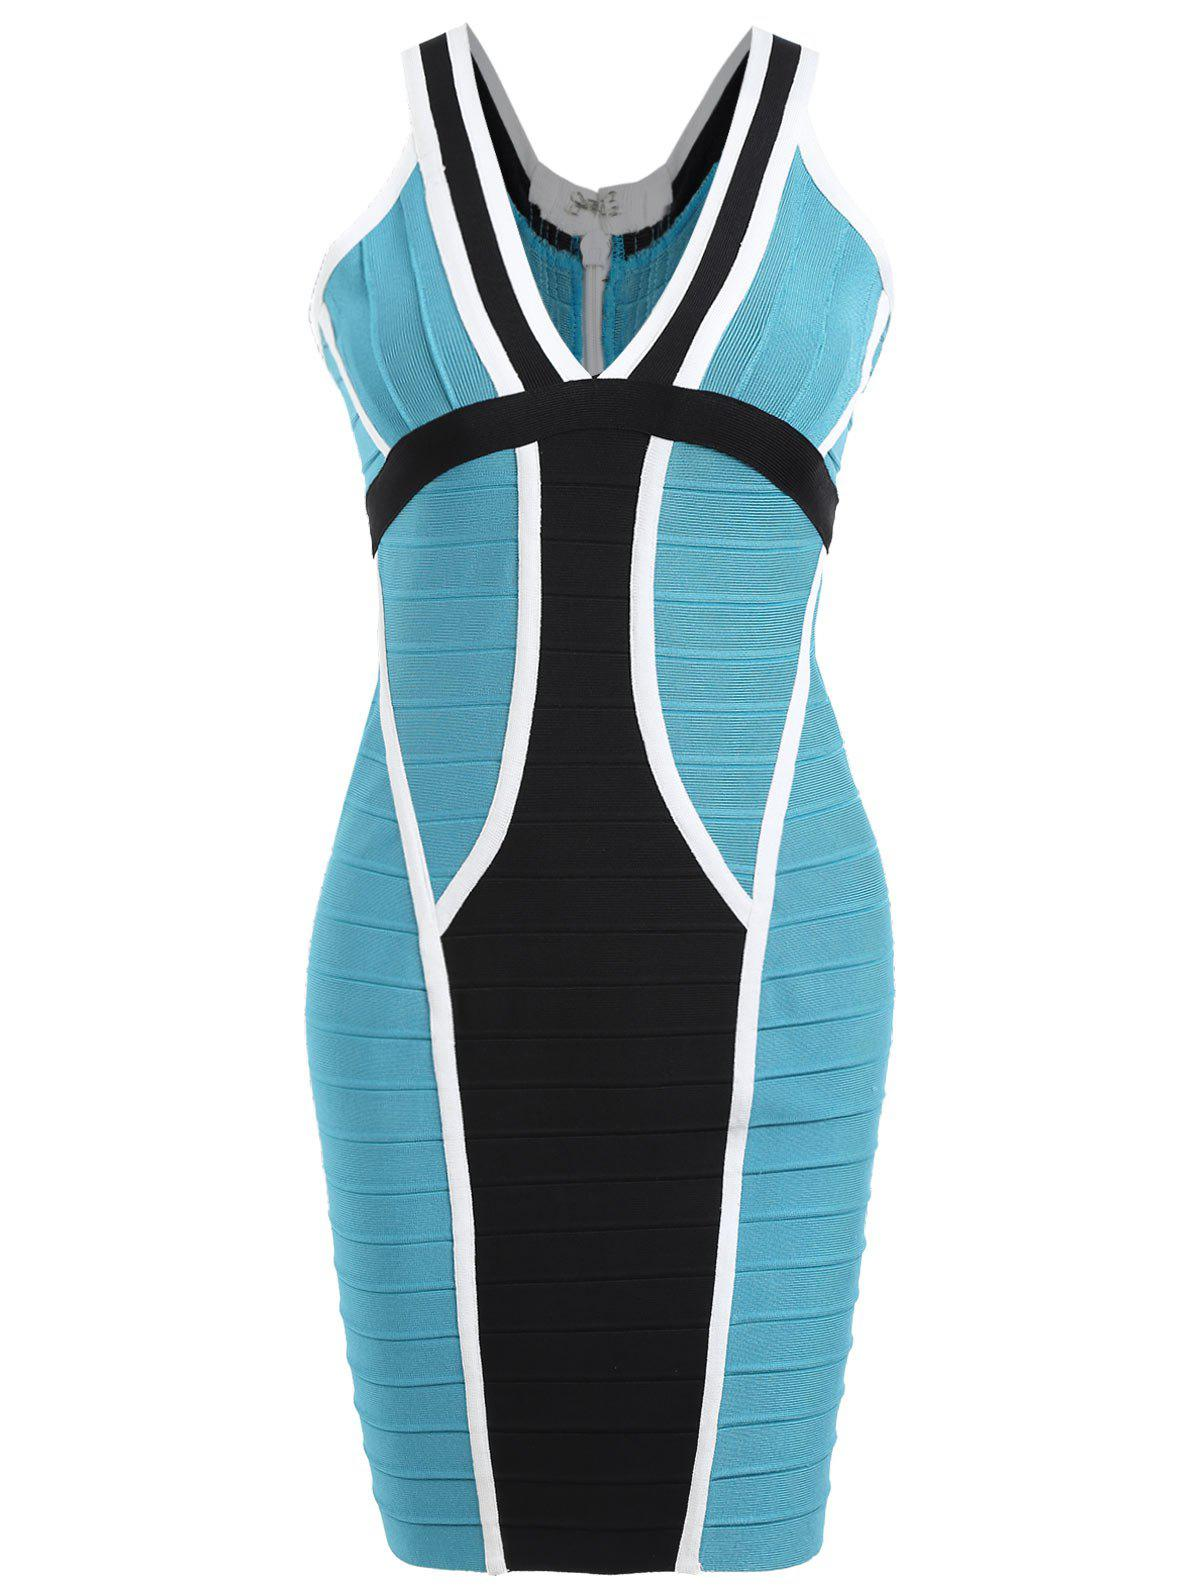 V Neck Color Block Bandage Dress - BLUE M